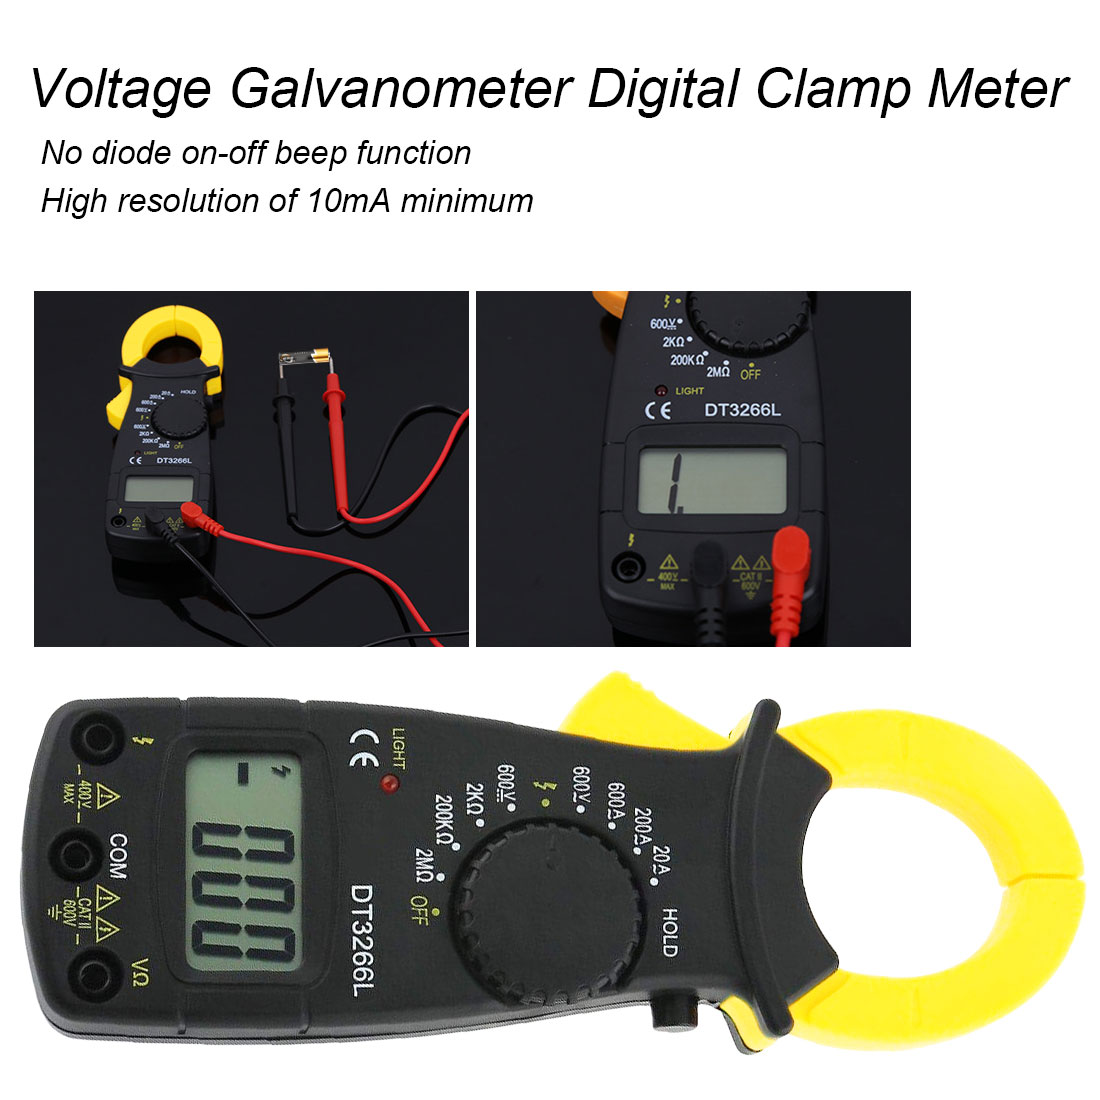 600A AC/DC Ohm Current Voltage Tester Digital Amper Clamp Meter Multimeter Current Clamp Pincers Voltmeter Ammeter